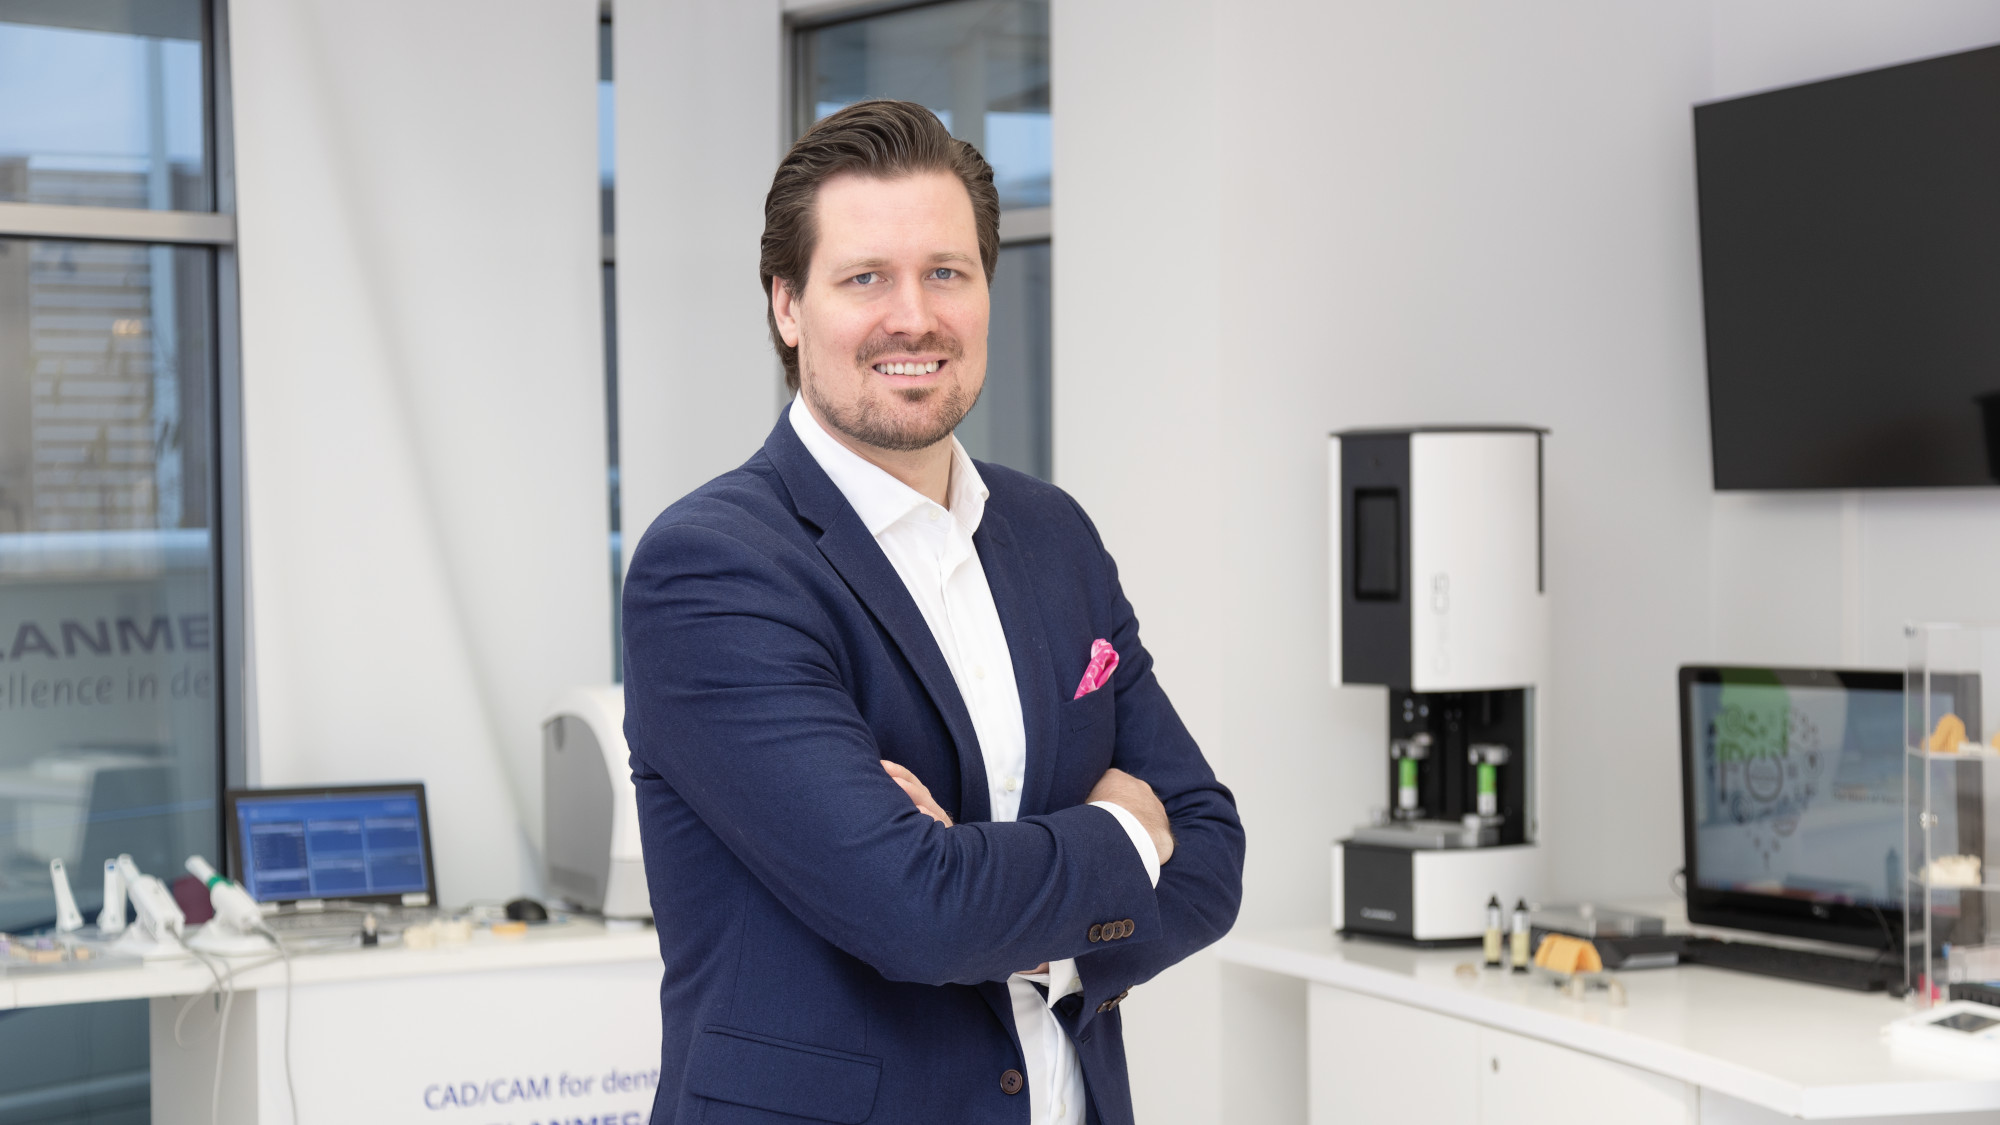 Interview: High-quality dental treatments with CAD/CAM technology